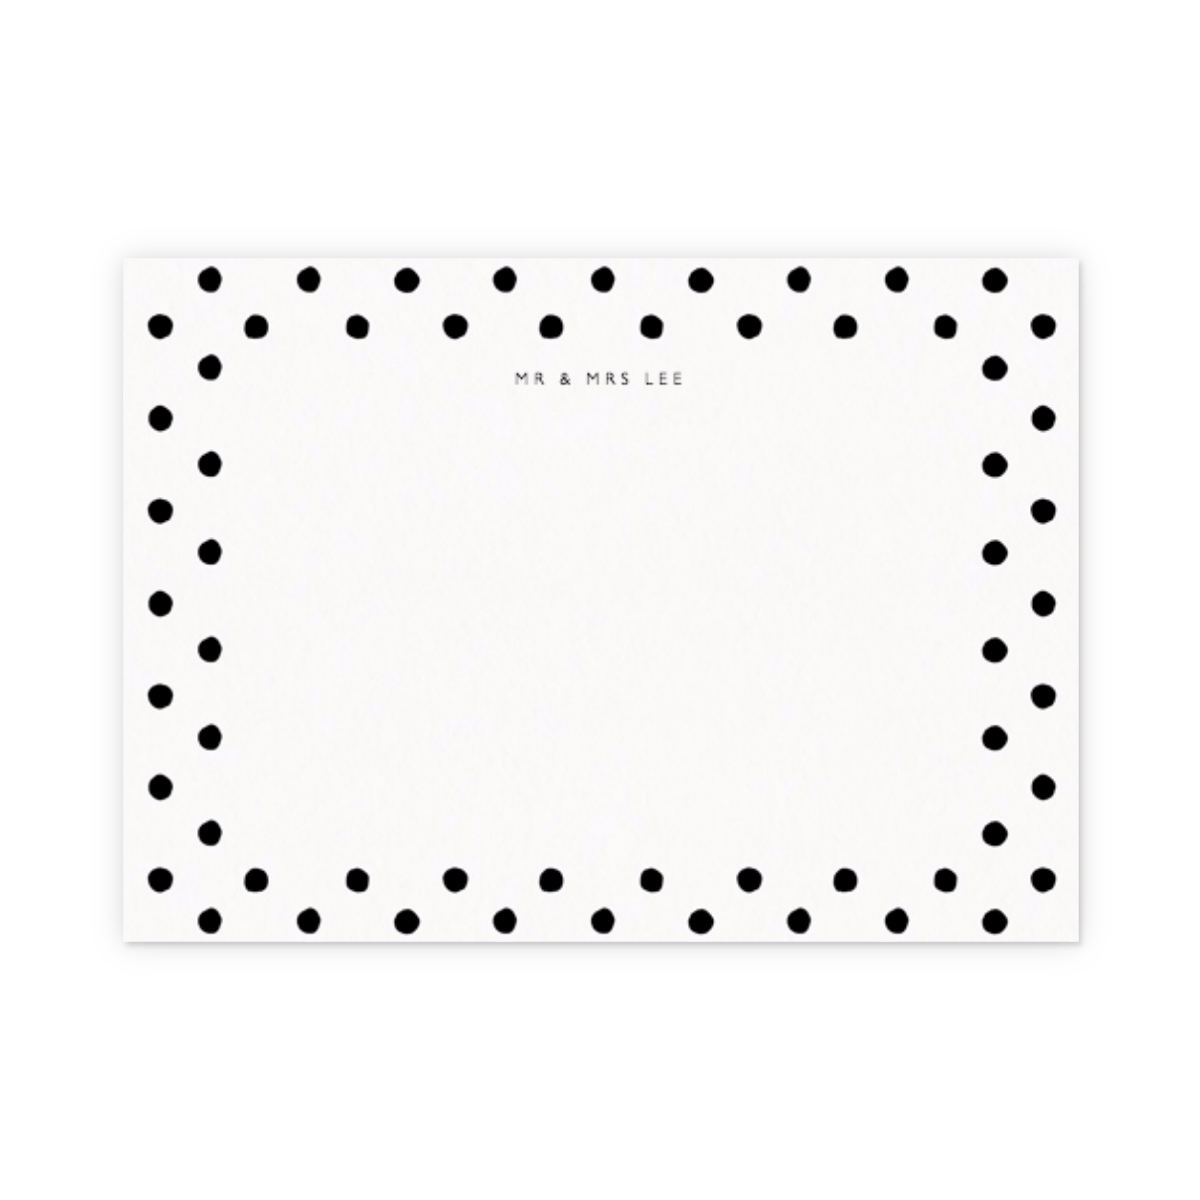 Https%3a%2f%2fwww.papier.com%2fproduct image%2f11167%2f10%2fpainted polka dot 2841 front 1551217722.png?ixlib=rb 1.1